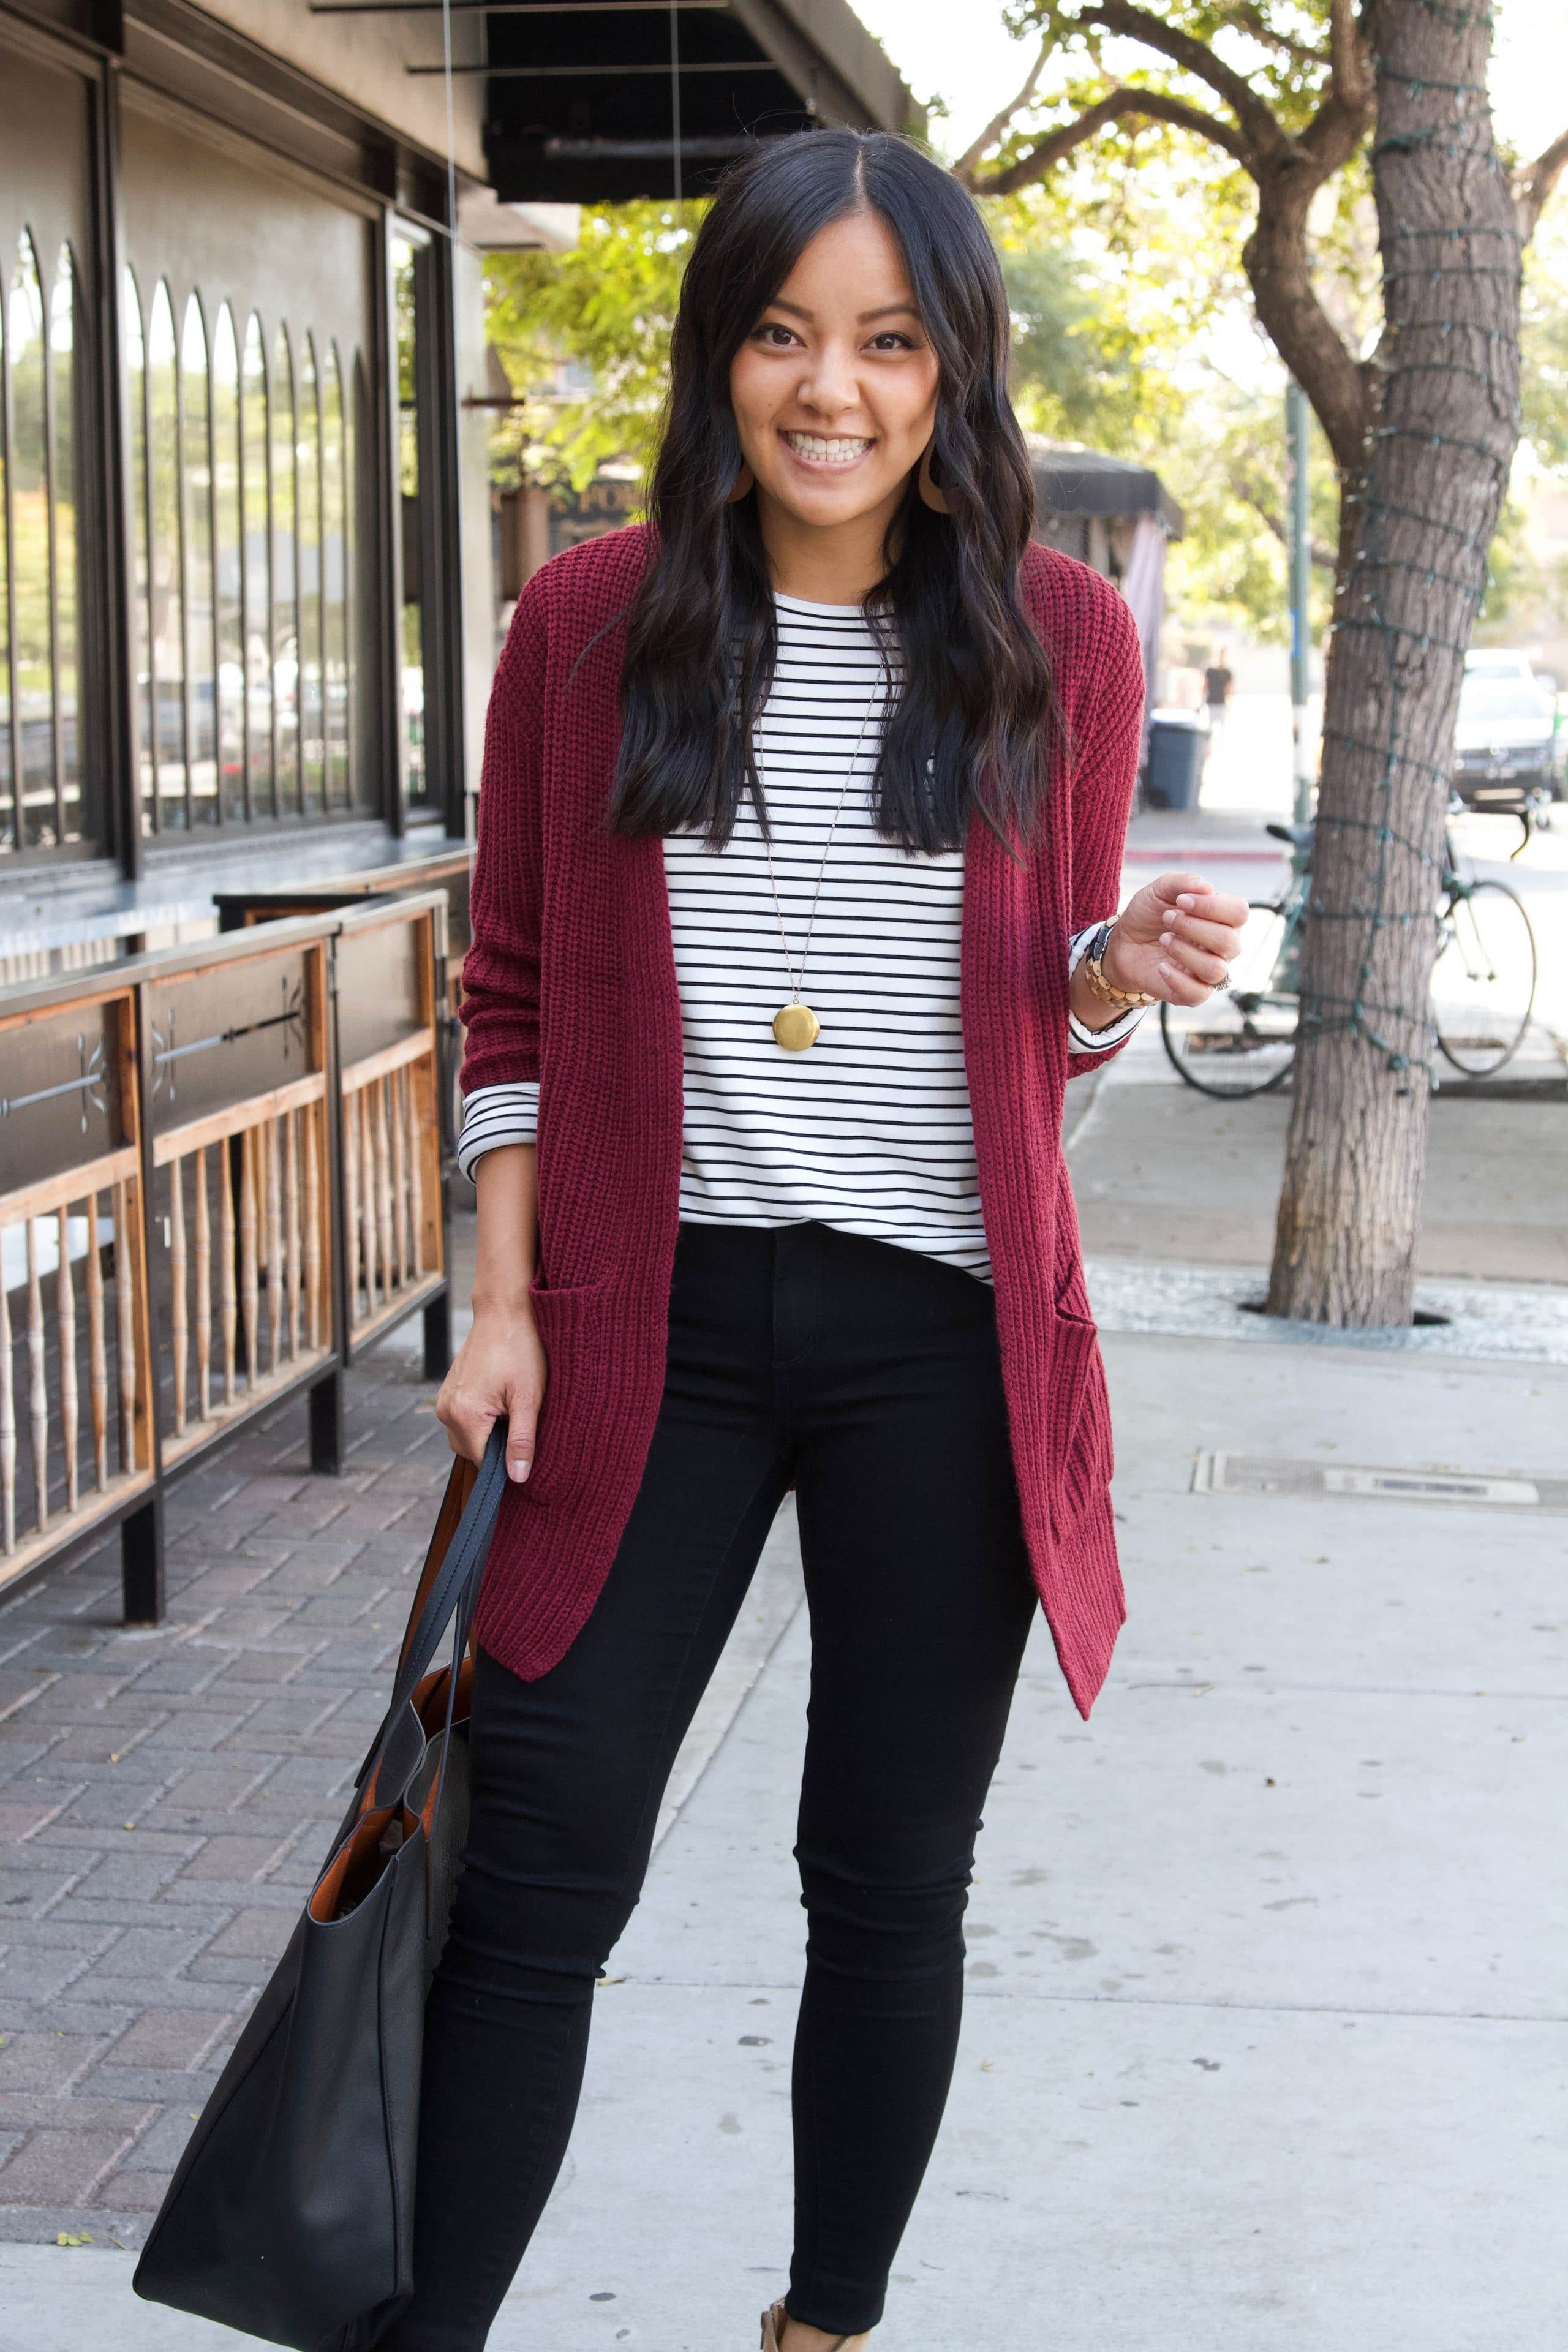 black and white striped shirt + maroon cardigan + taupe booties + black skinny pants + black tote + business casual outfit